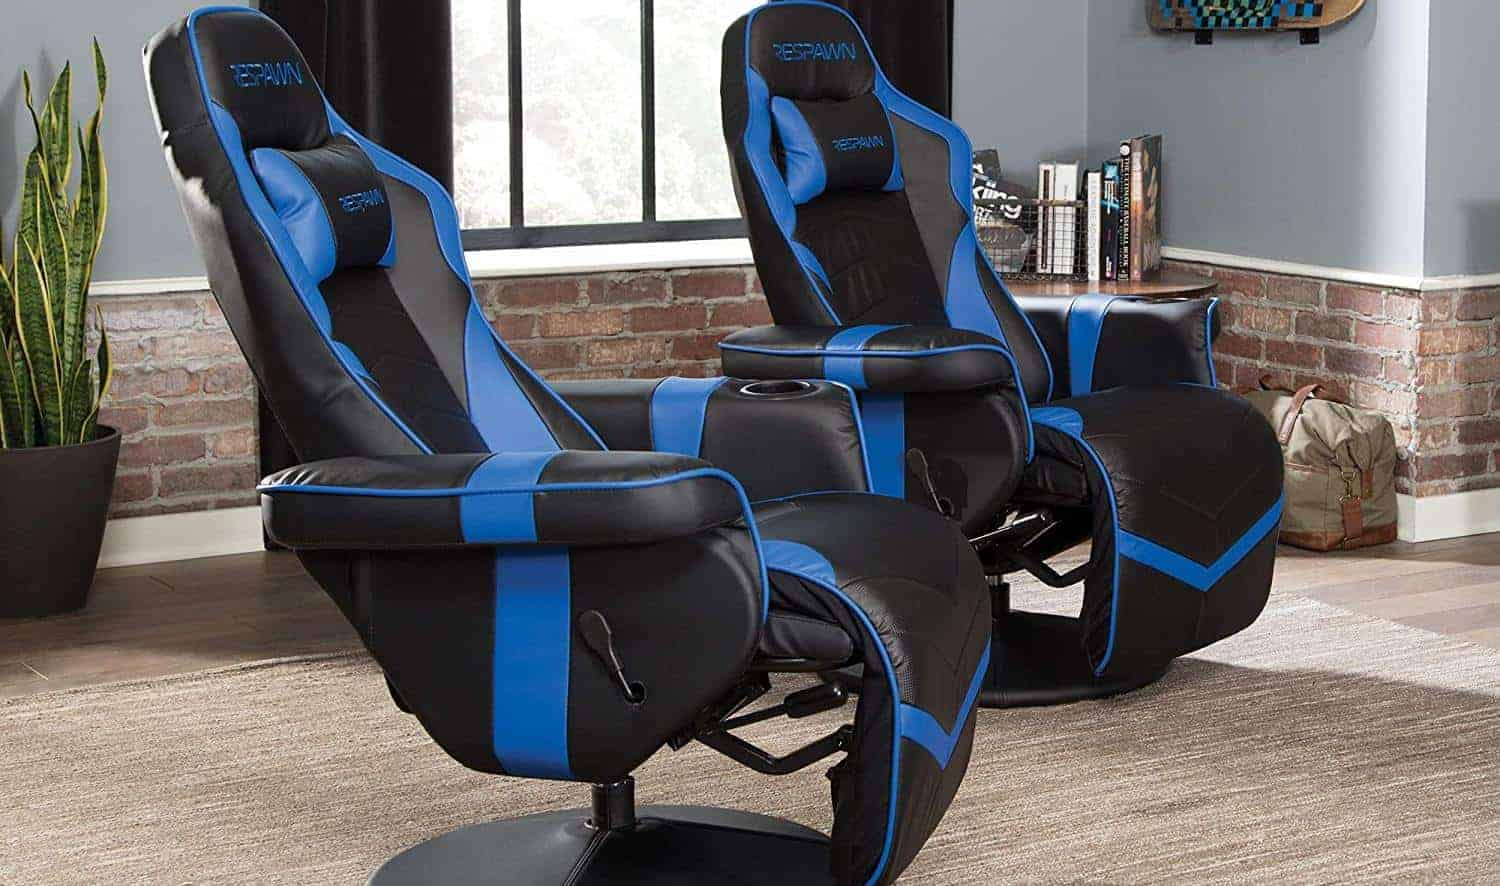 Respawn RSP 900 Blue Gaming chair